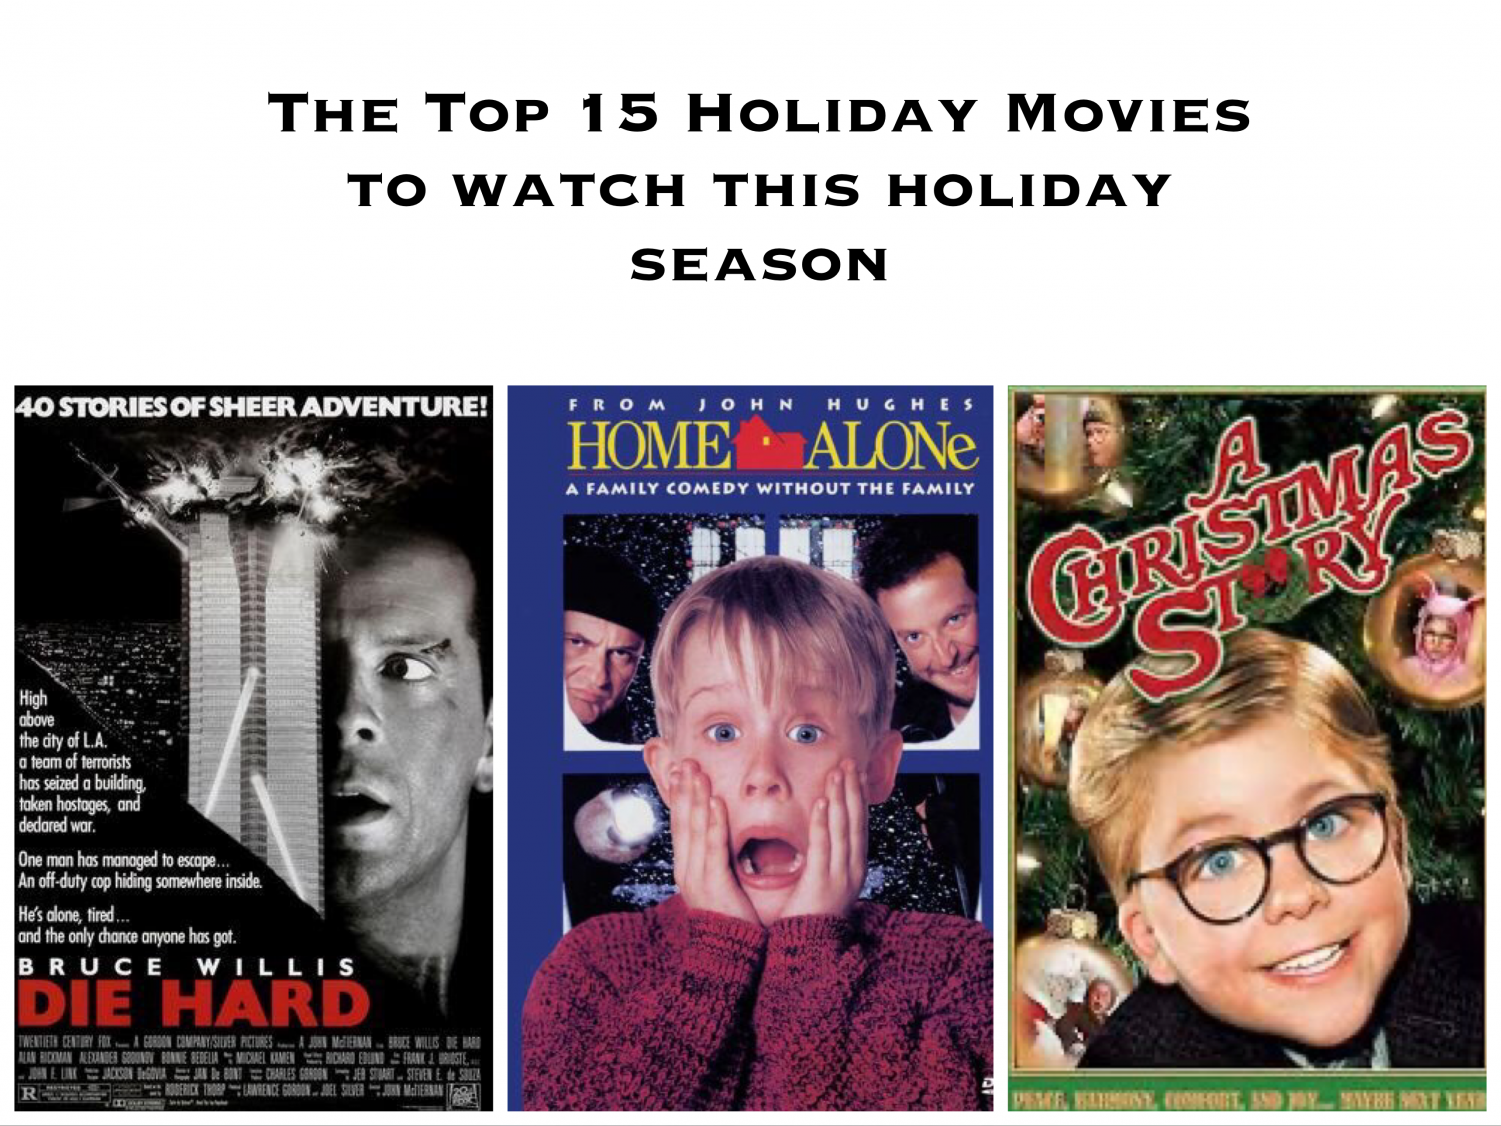 The holiday season is approaching fast. Binge watch these movies before the holiday spirit disappears.